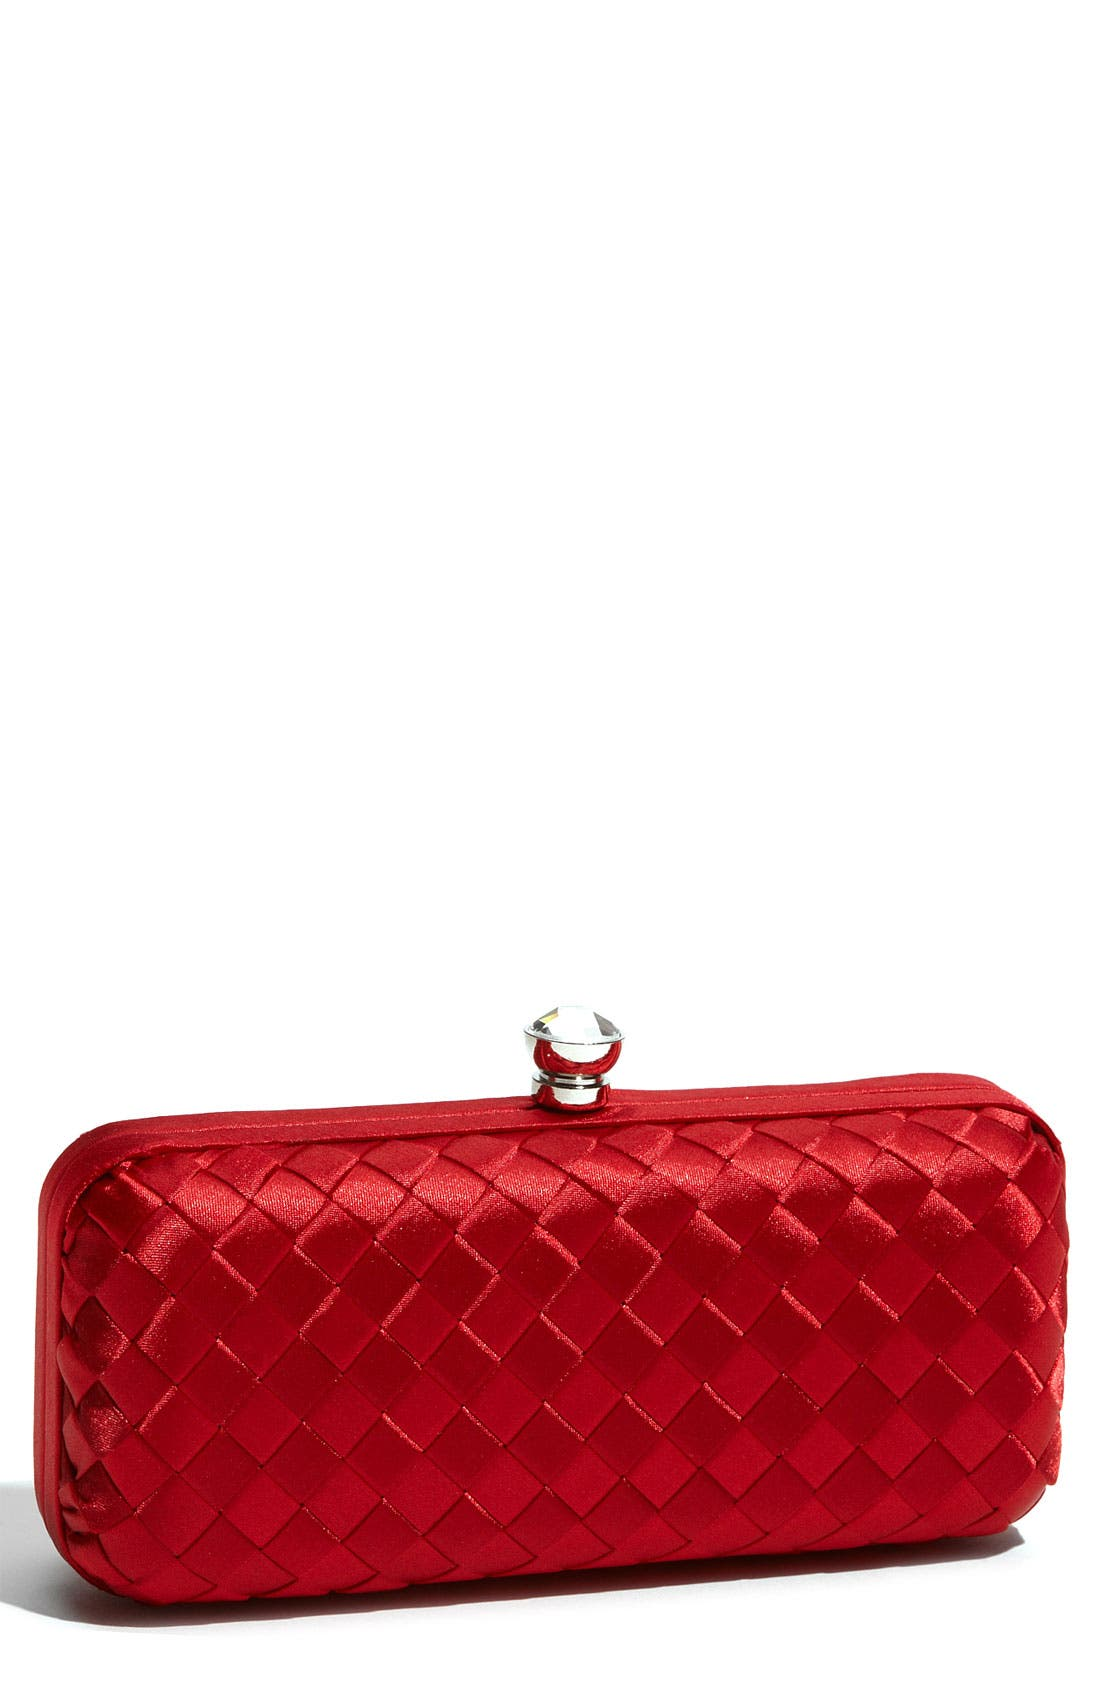 Main Image - Expressions NYC Woven Satin Minaudiere Clutch